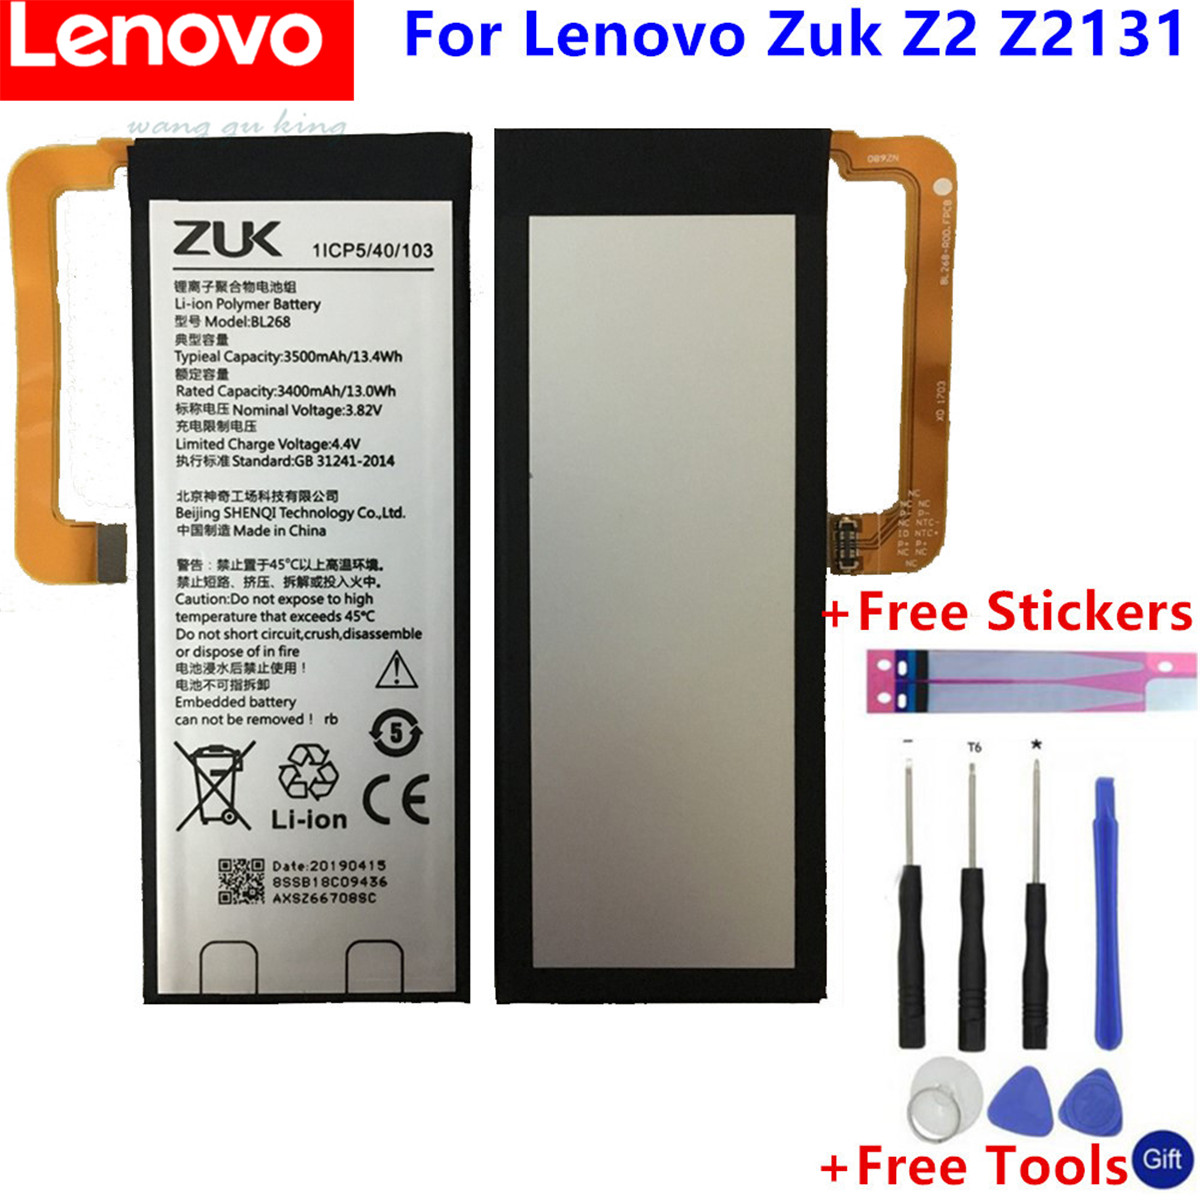 100% Original NEW 3500mAh BL268 Battery for Lenovo Zuk Z2 Z2131 Cell Phone Battery image